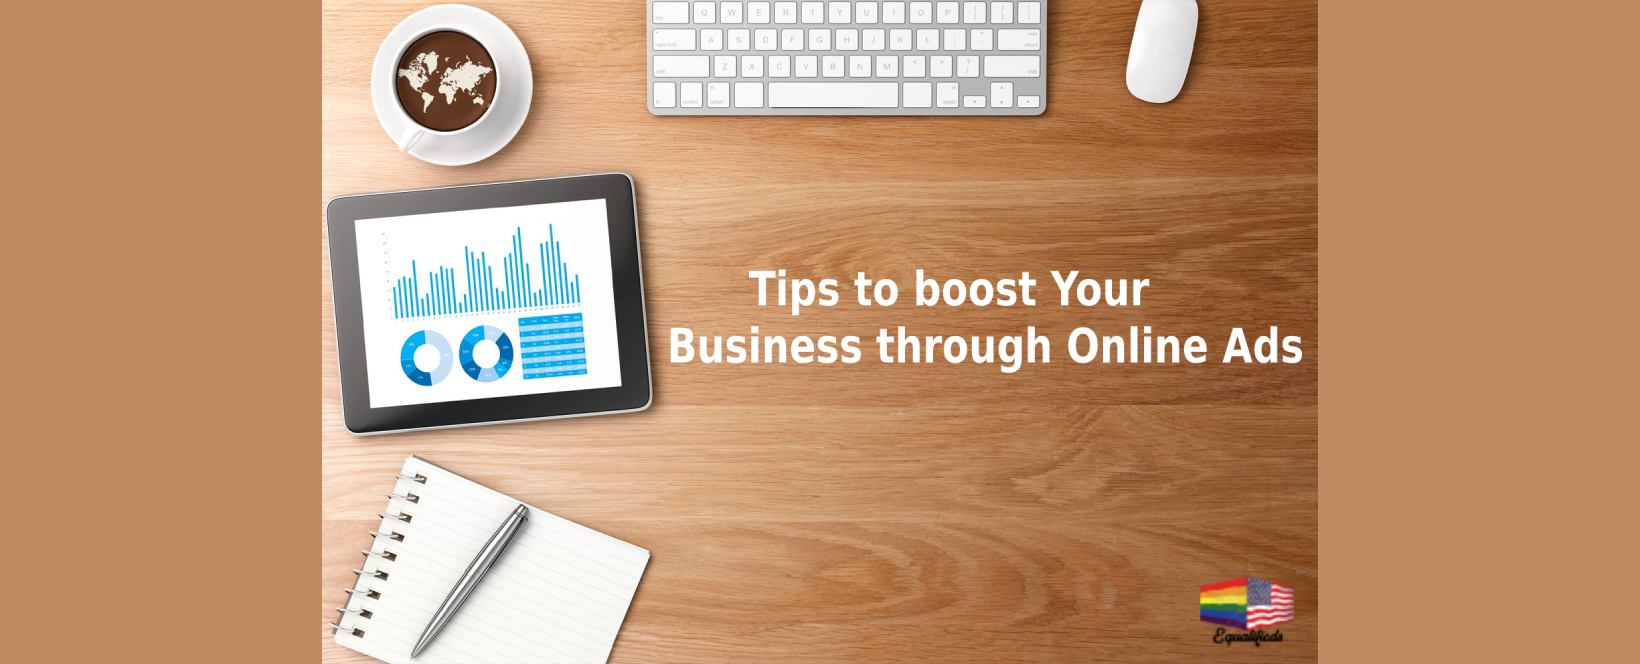 Five tips to boost your Business through Online Ads